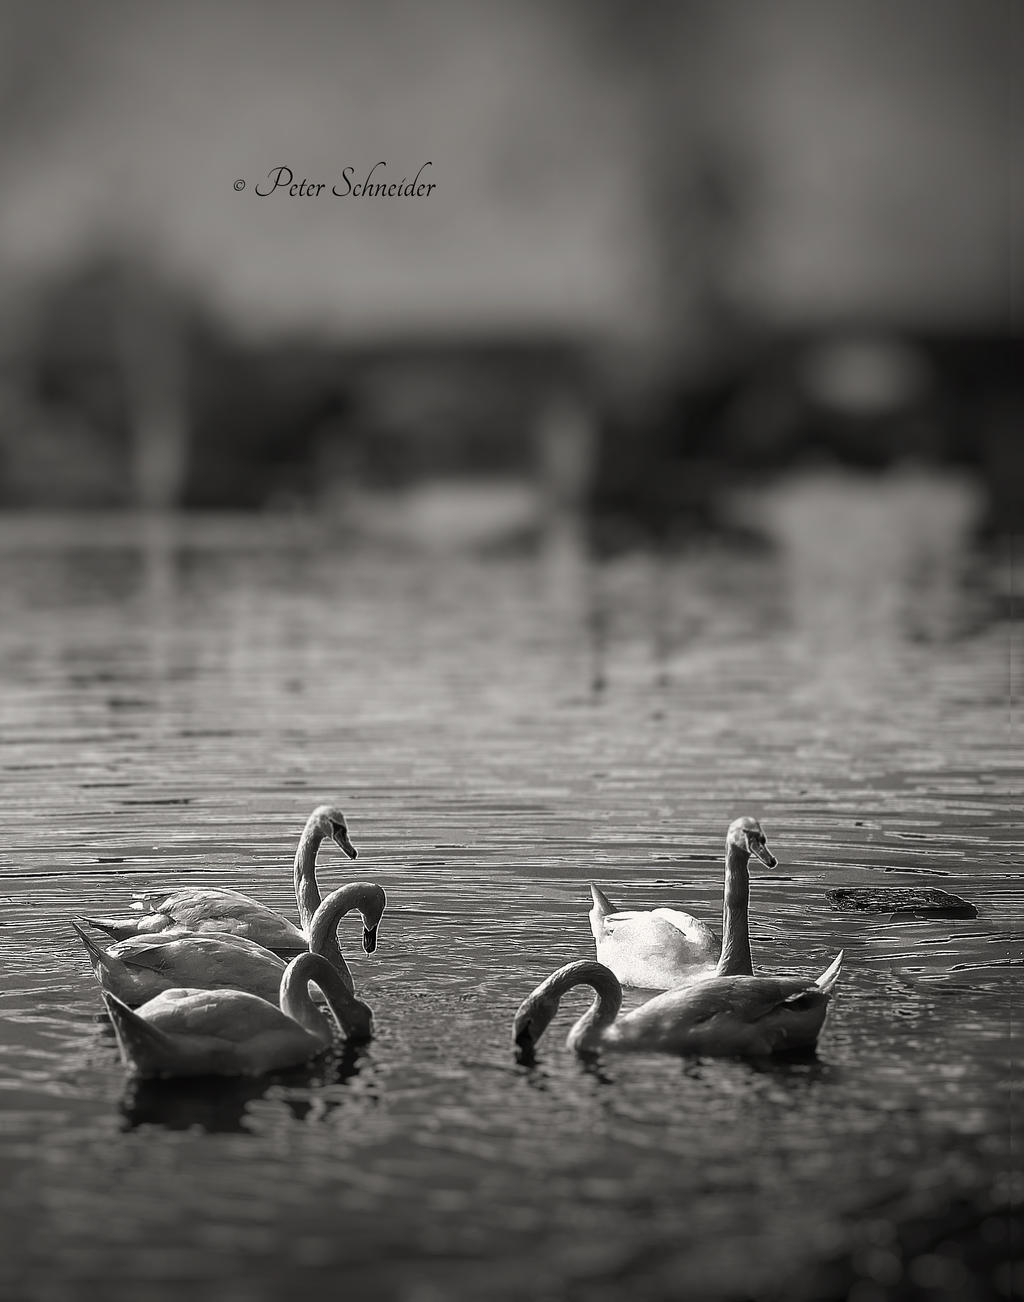 Beside the river. by Phototubby